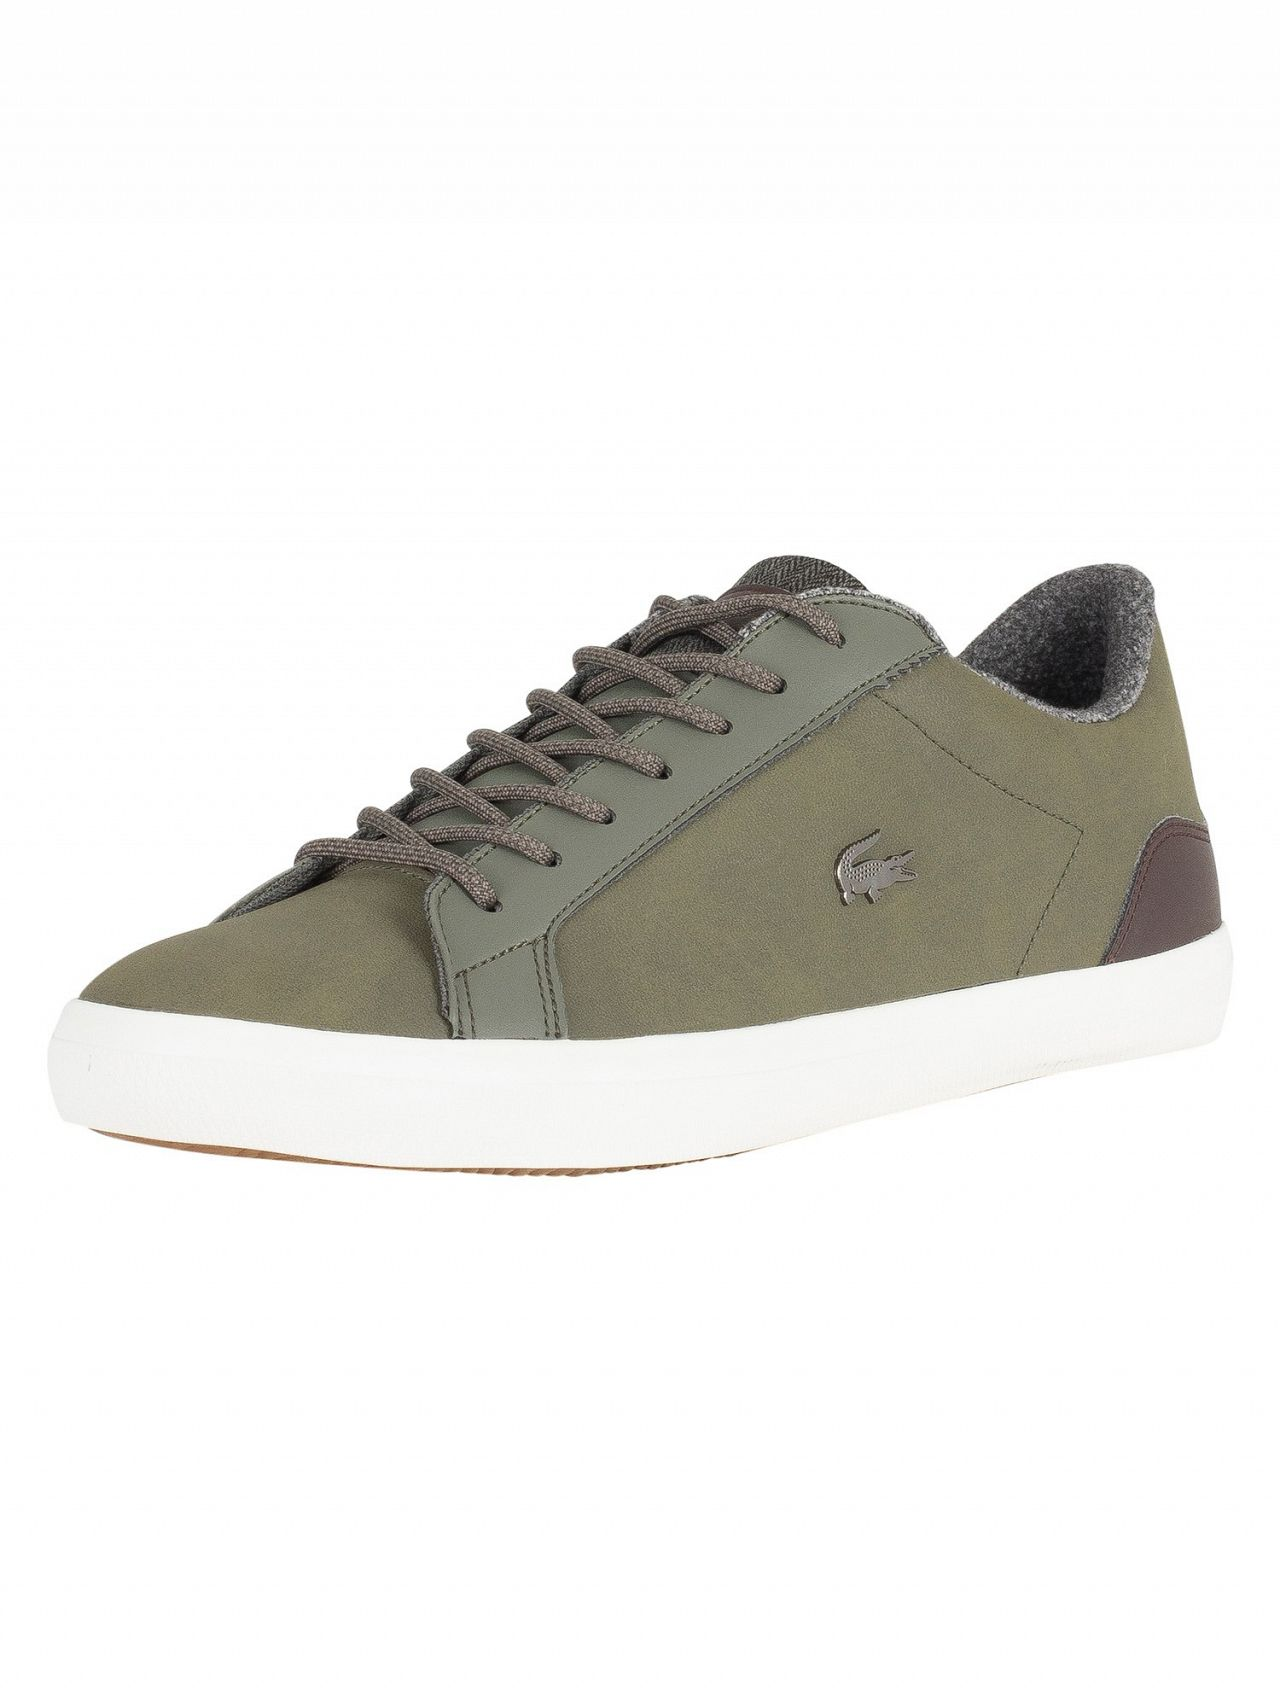 7fda80448 Lacoste Khaki Brown Lerond 318 2 CAM Leather Trainers